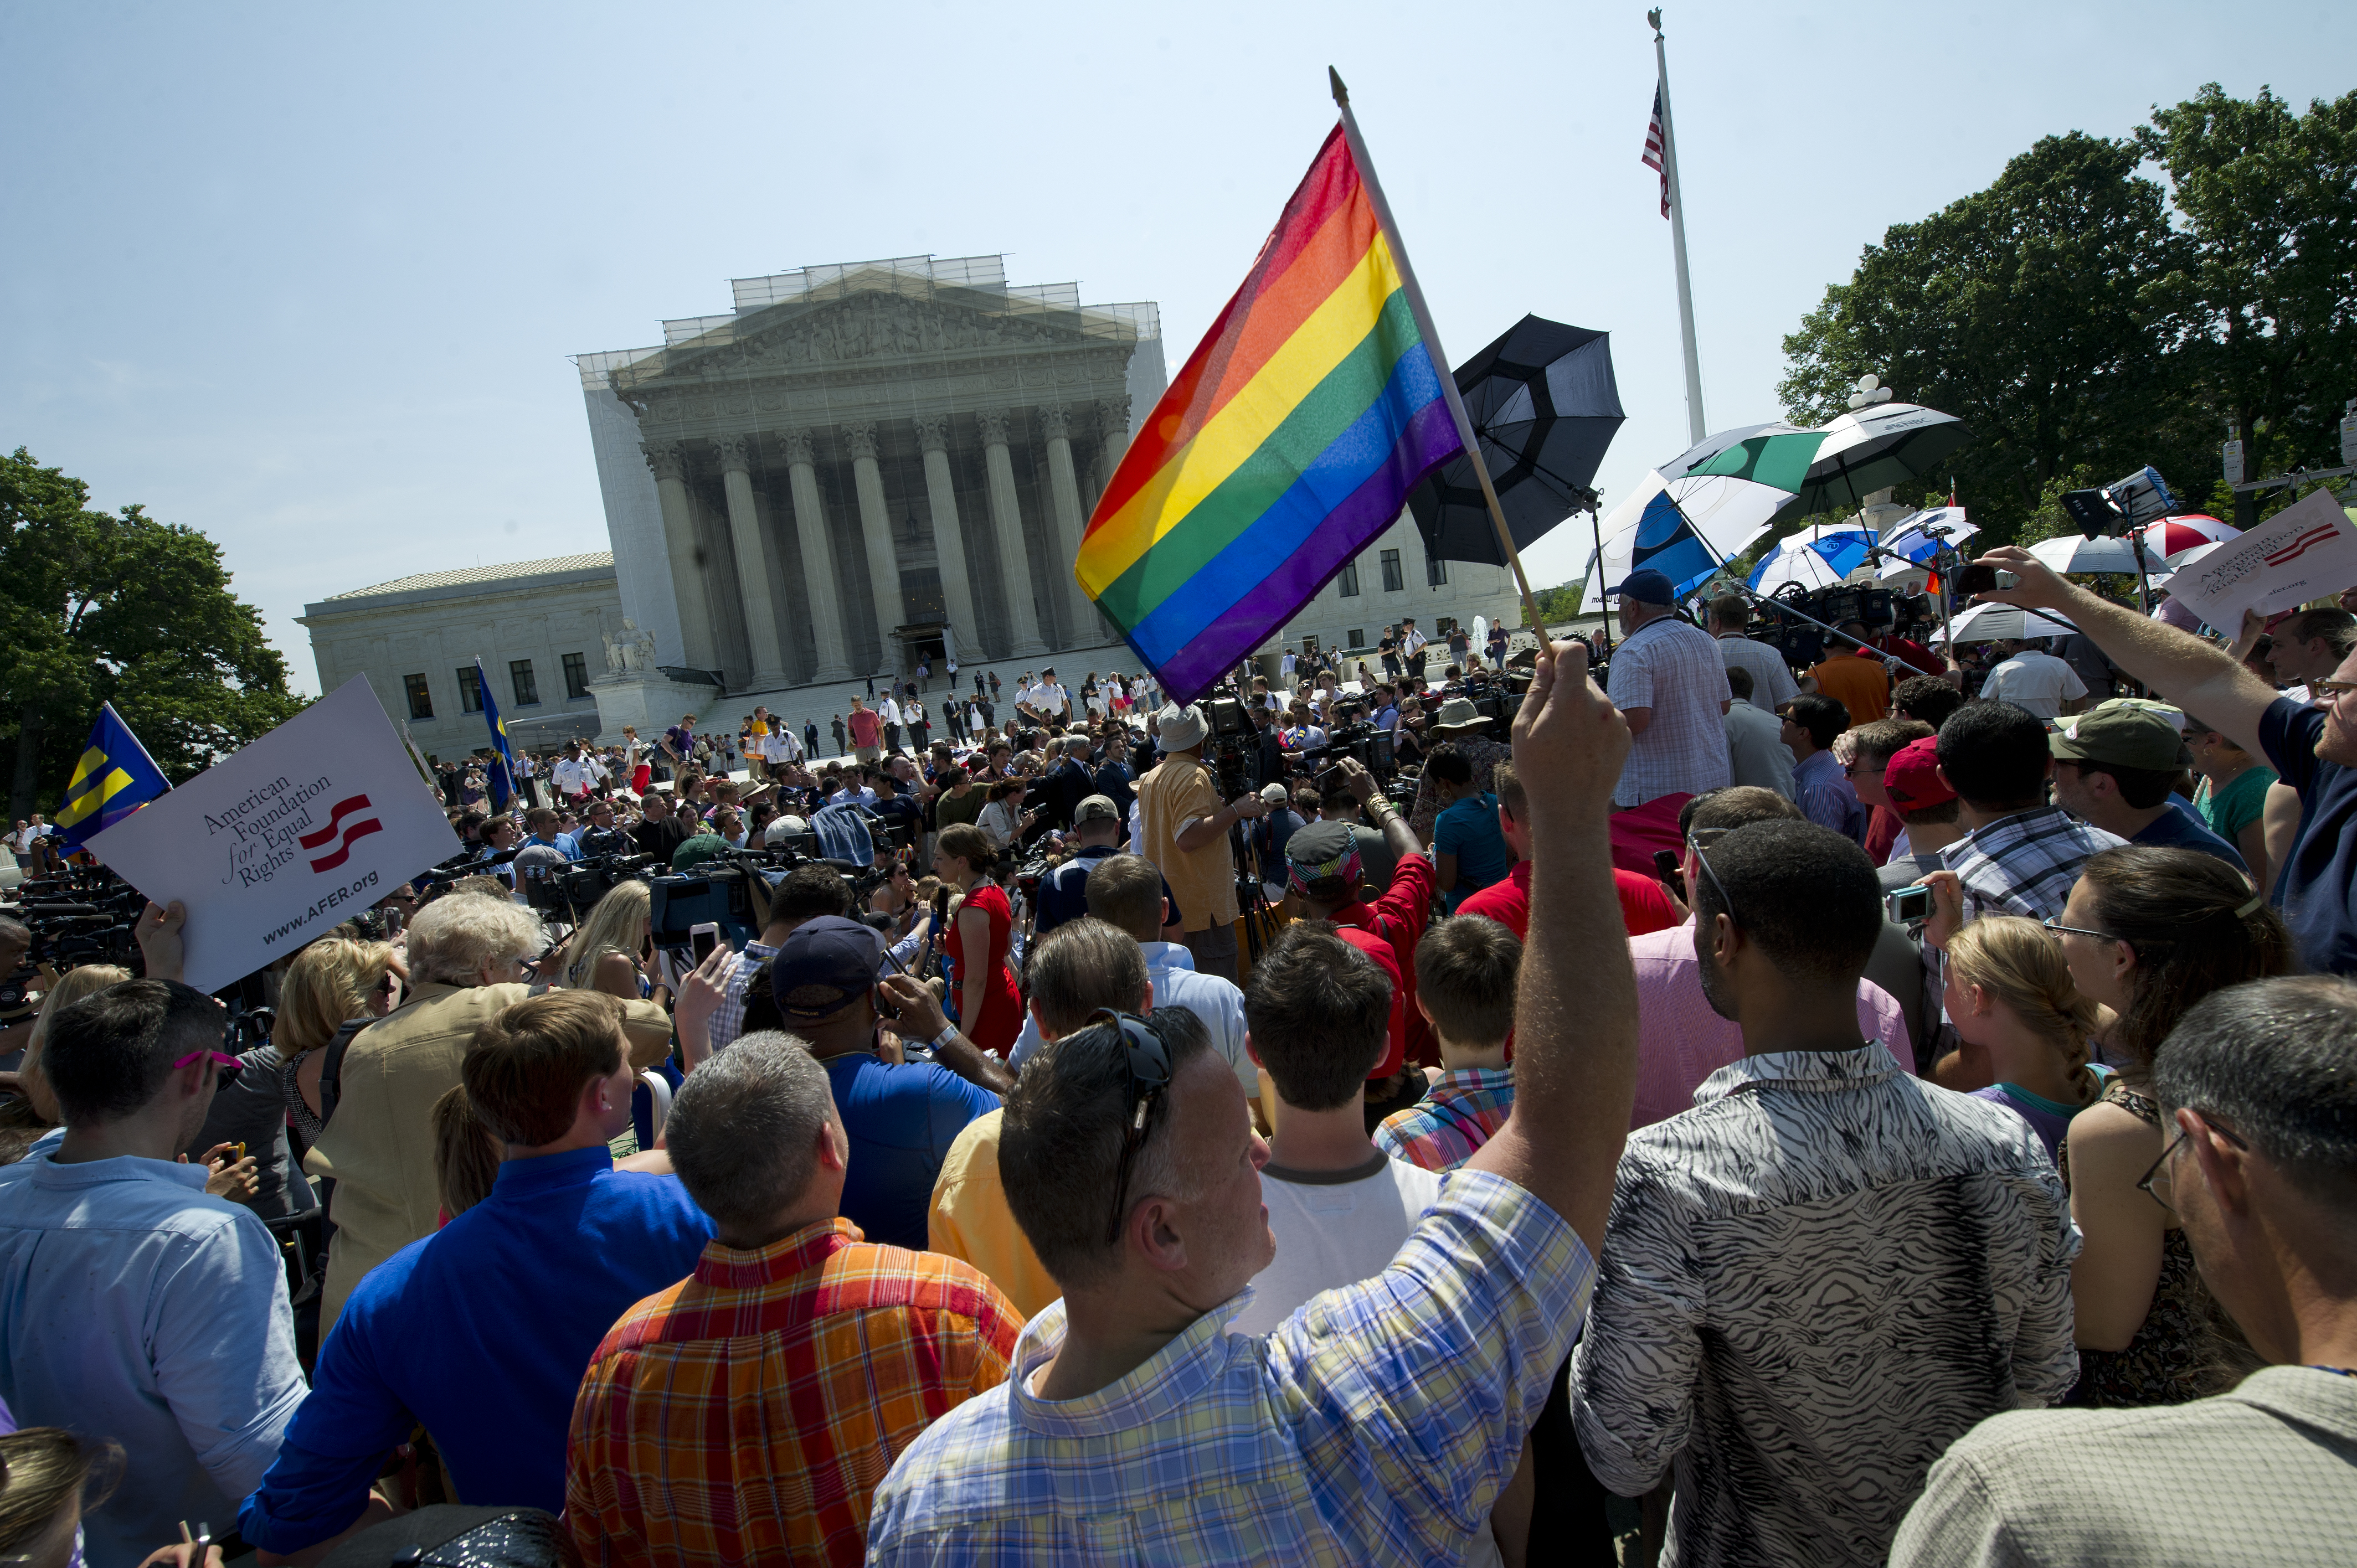 Gay and lesbian activist protest in front of the U.S. Supreme Court building in Washington, DC. June, 2013.